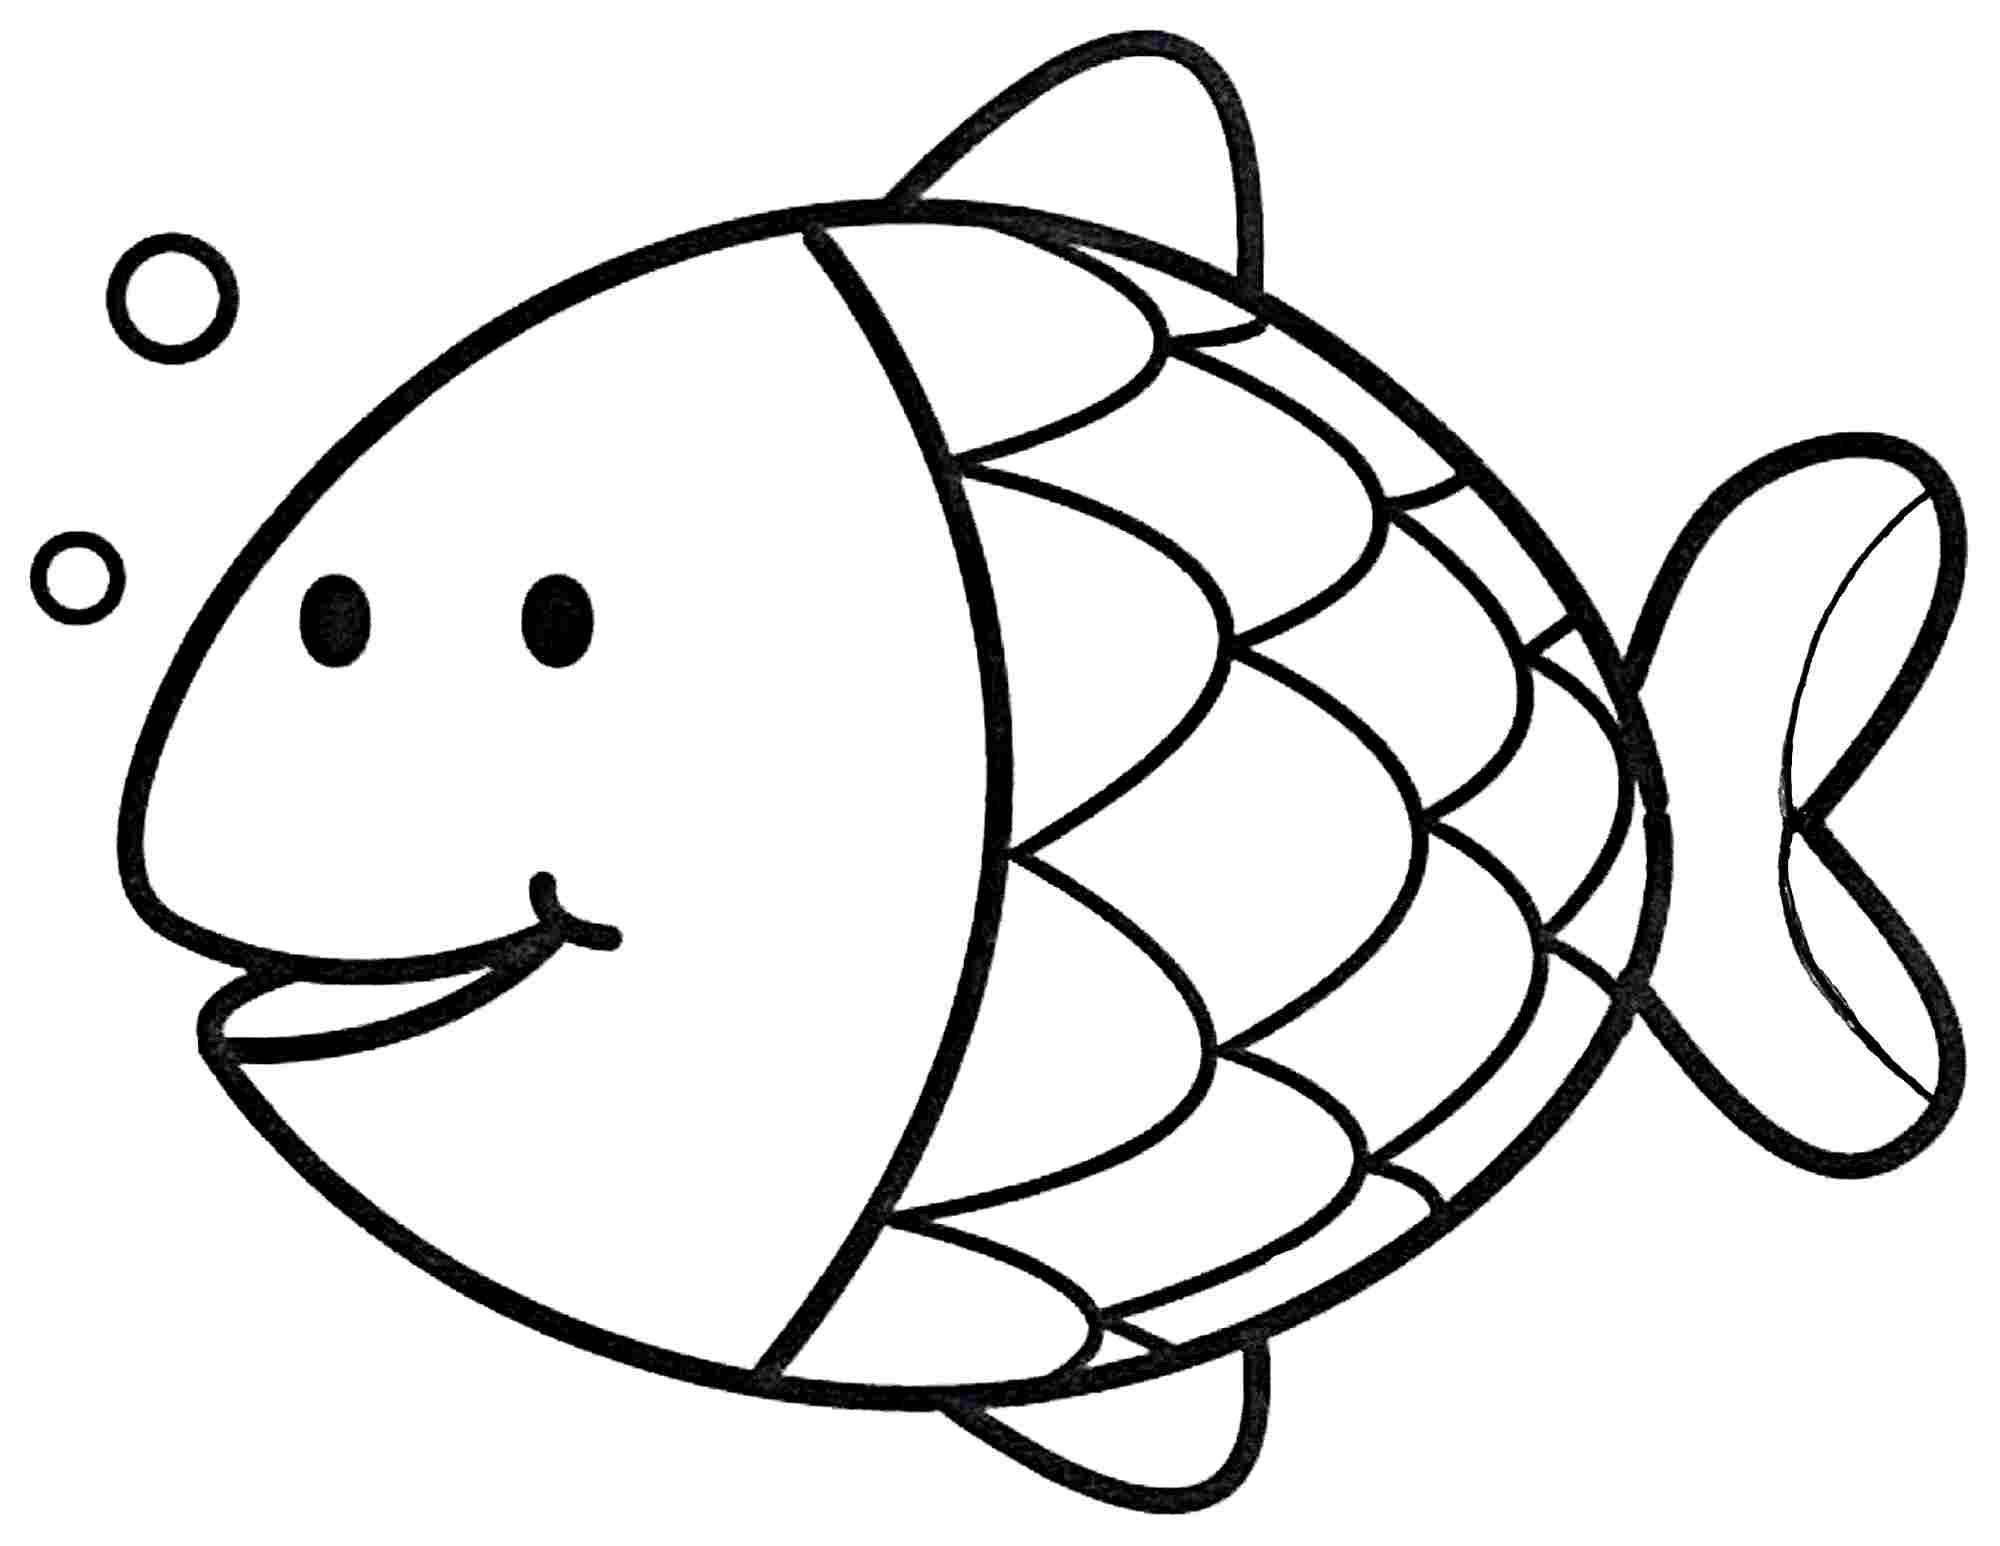 Simple Fish Coloring Pages - Coloring Home